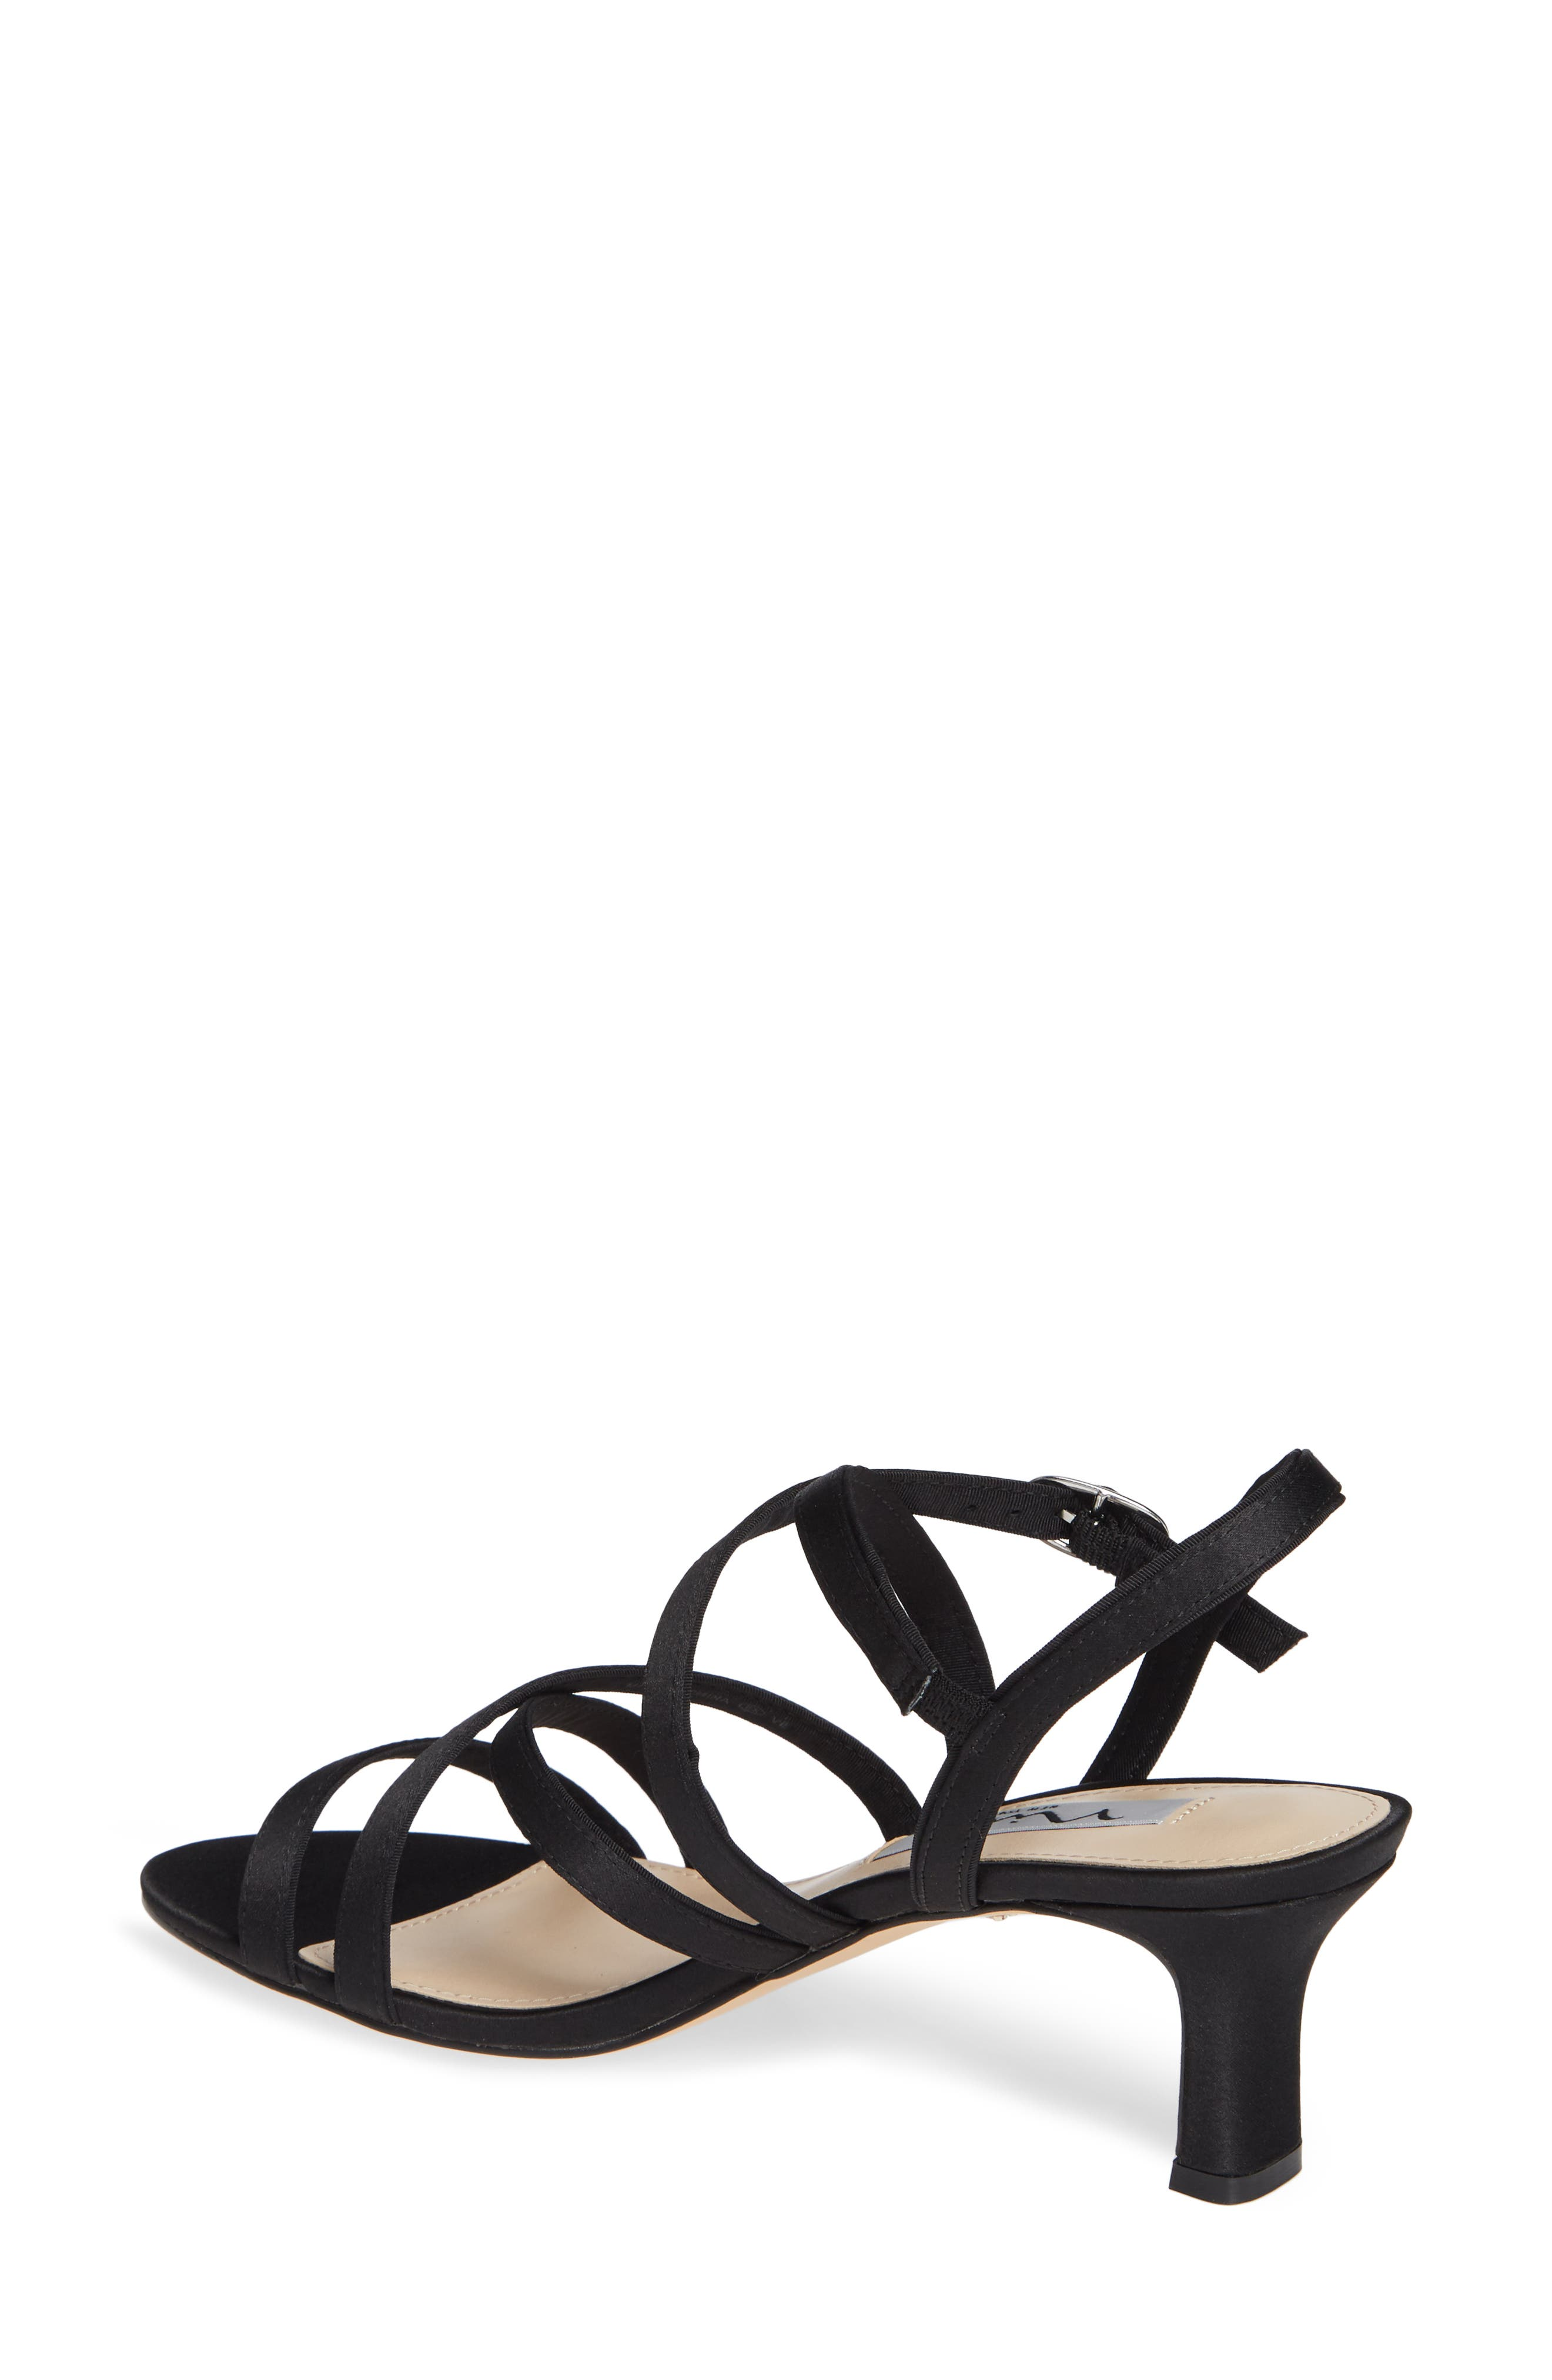 NINA, Genaya Strappy Evening Sandal, Alternate thumbnail 2, color, BLACK SATIN